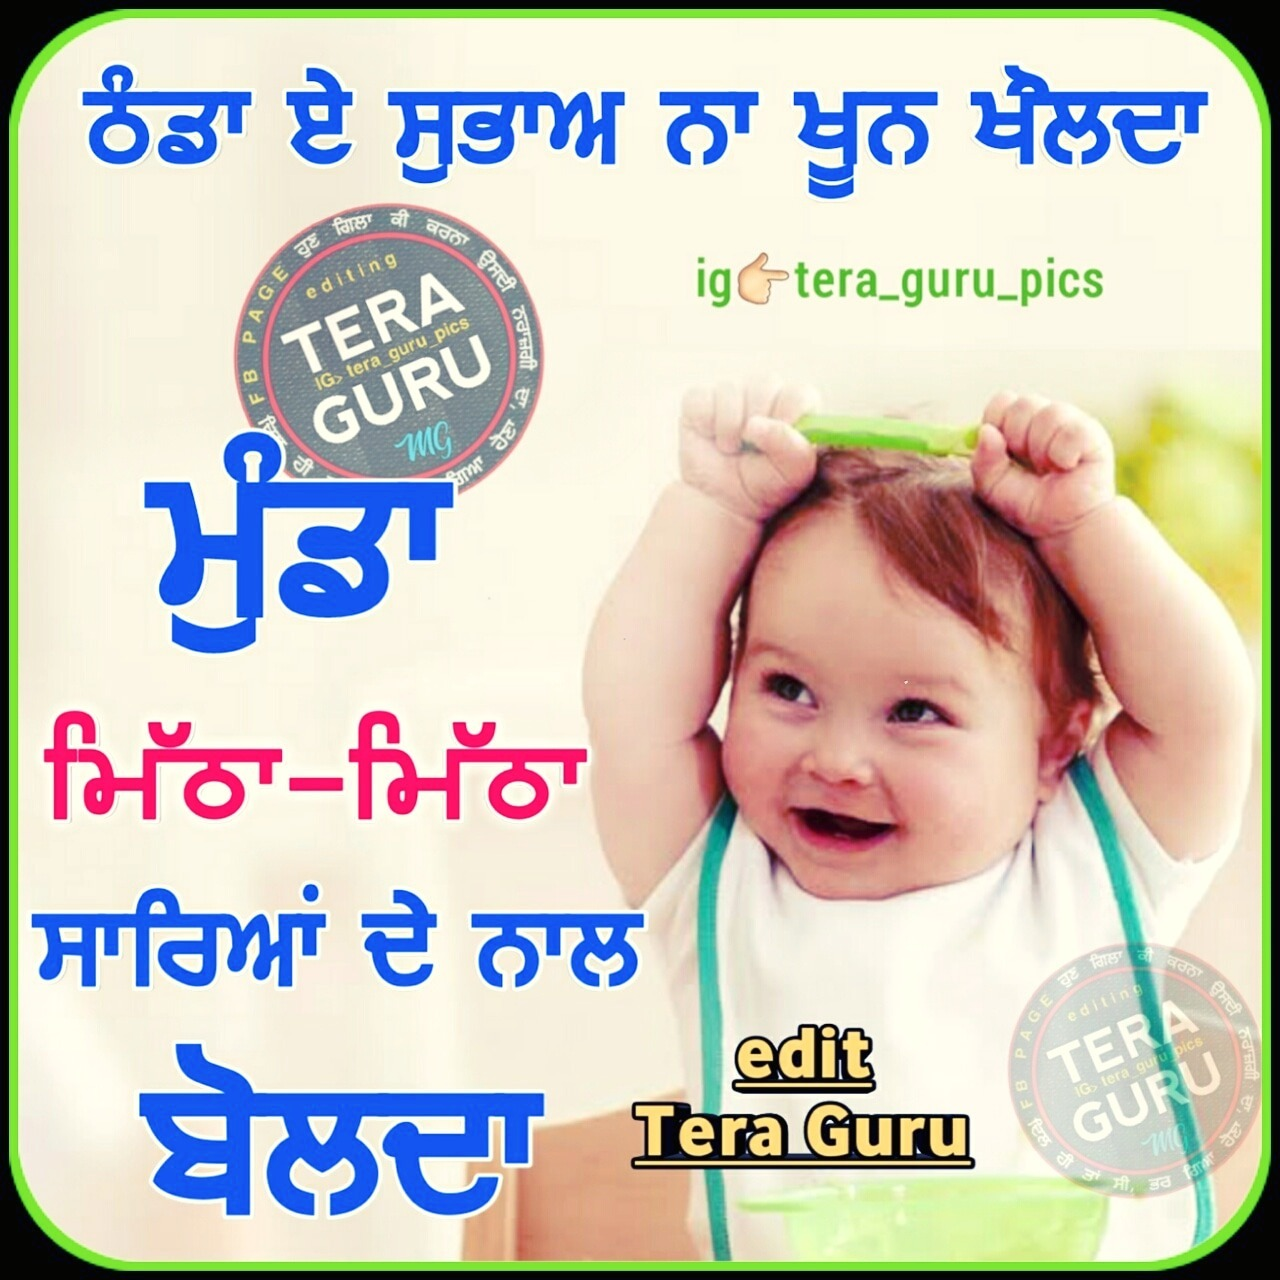 Punjabi Love Pictures, Images, Graphics - Page 5